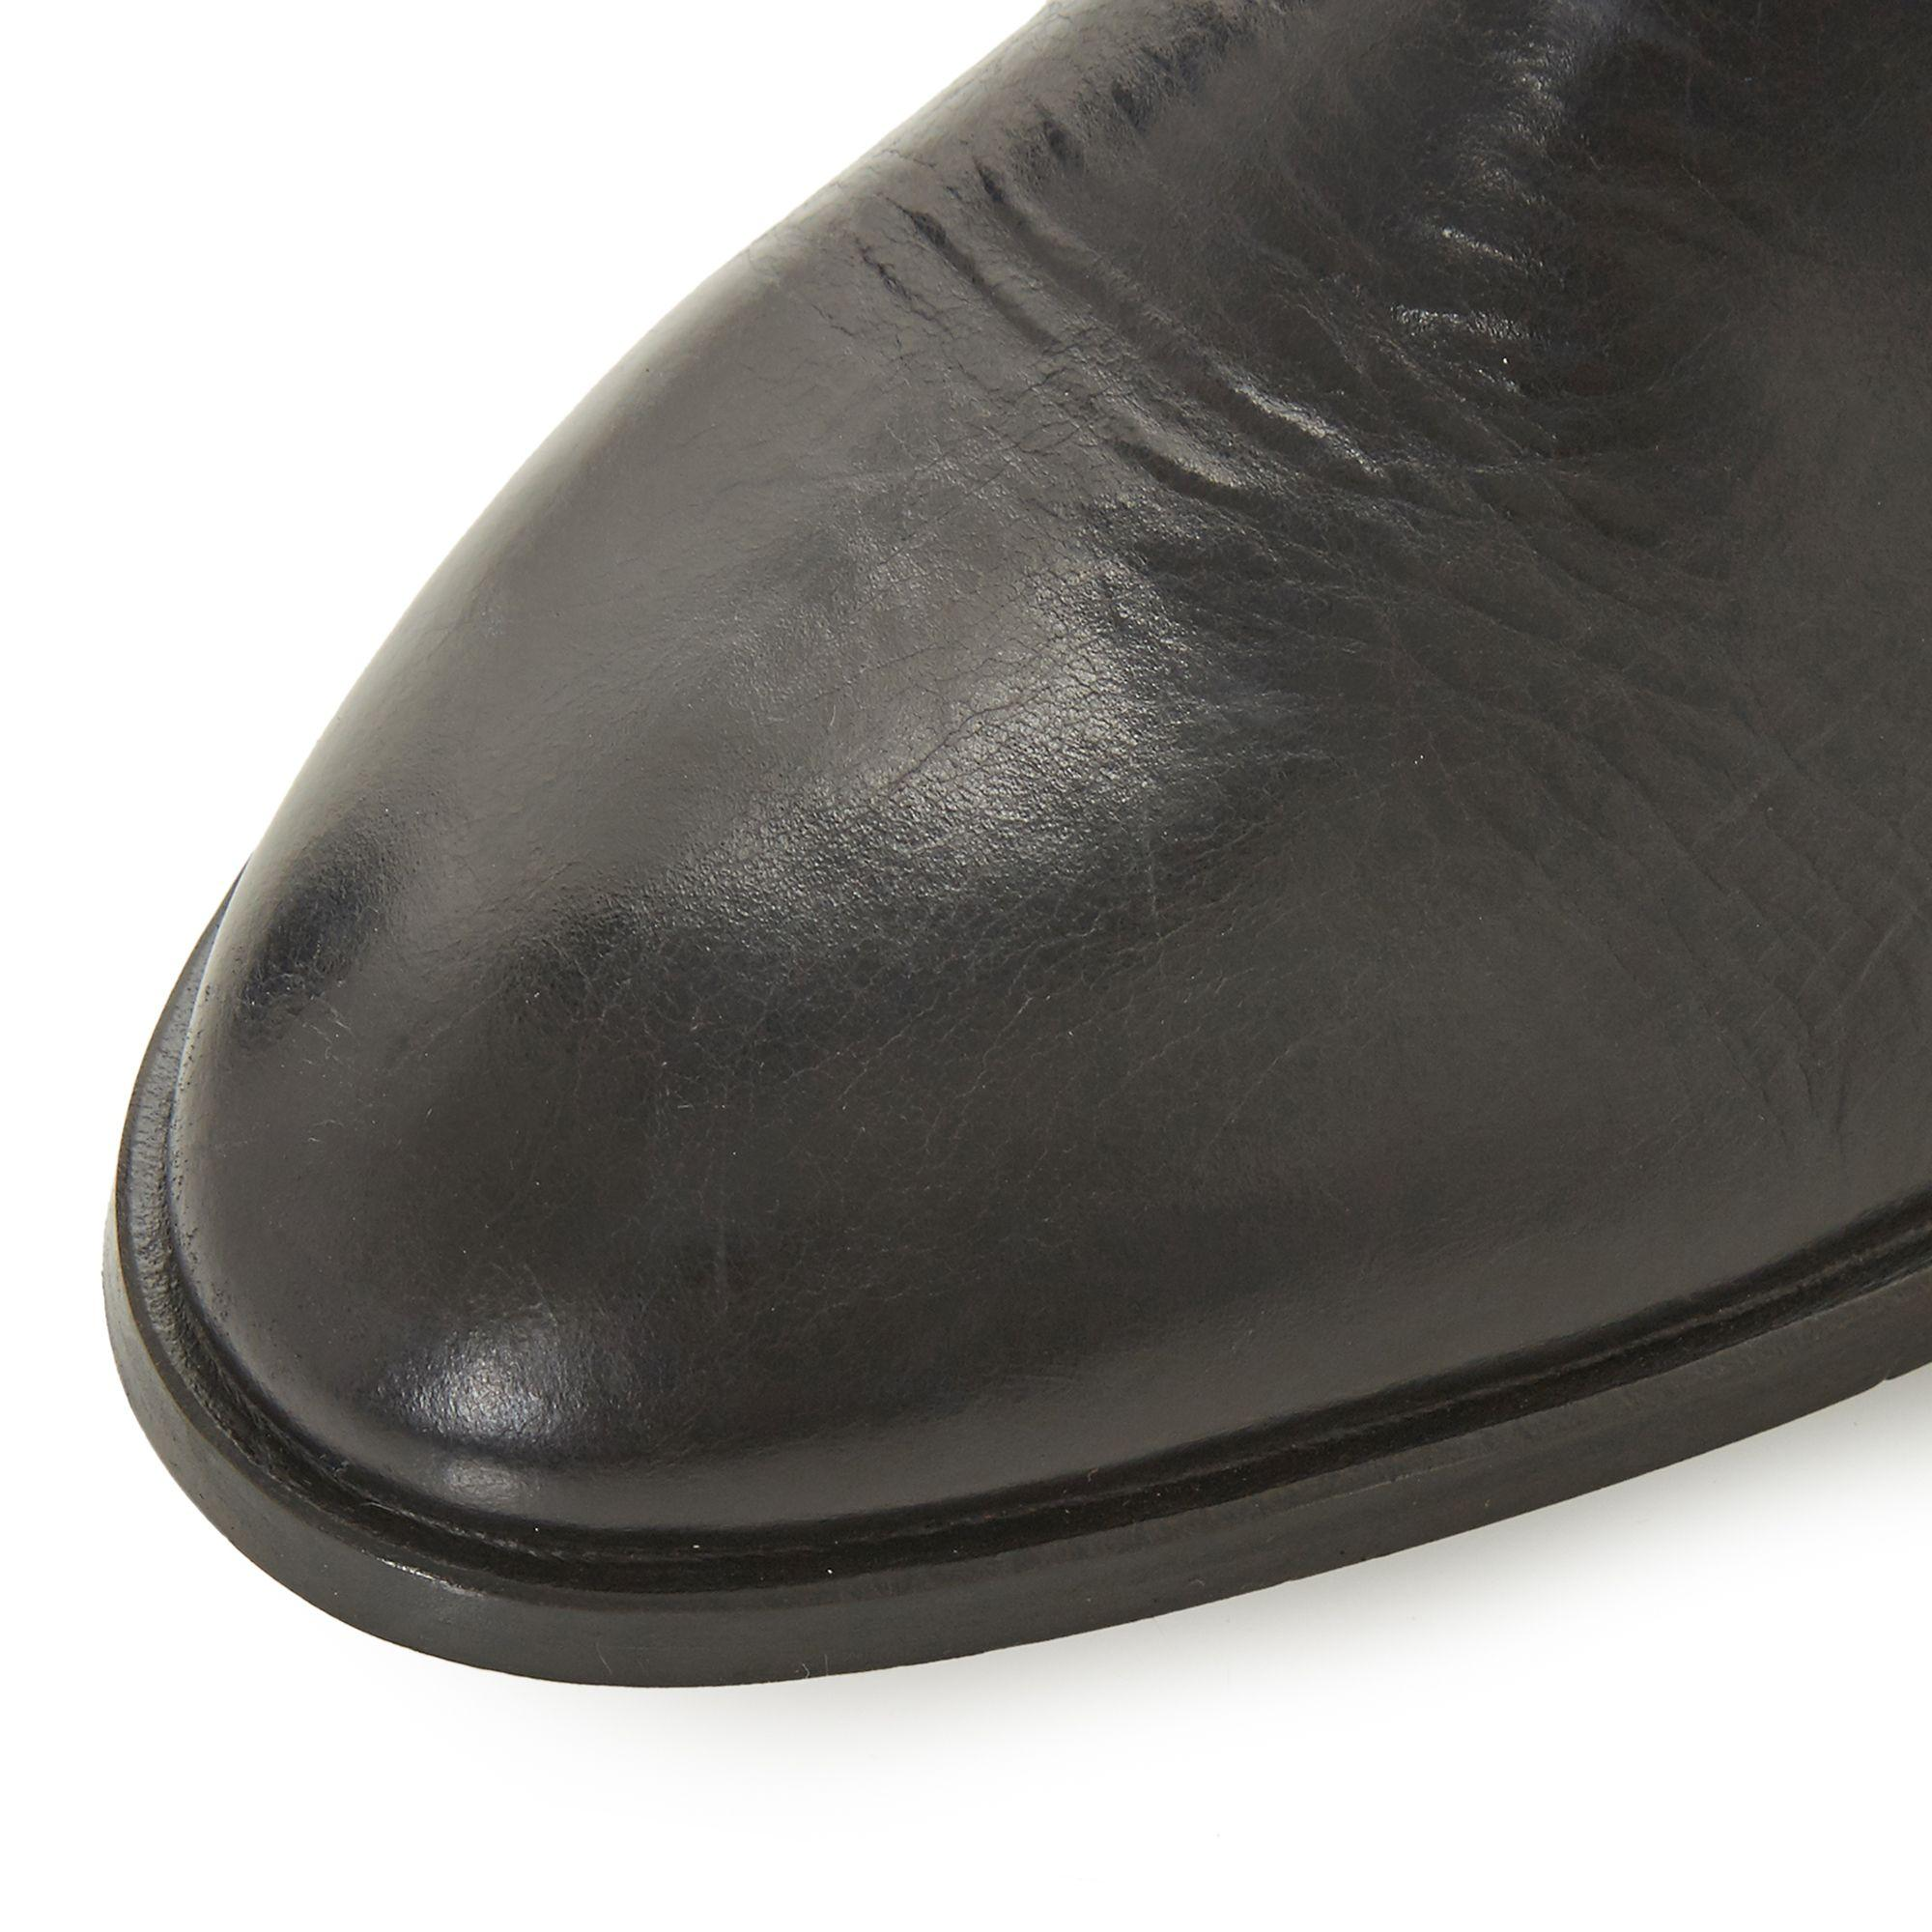 Dune Leather 'payeton' Chelsea Boots in Black